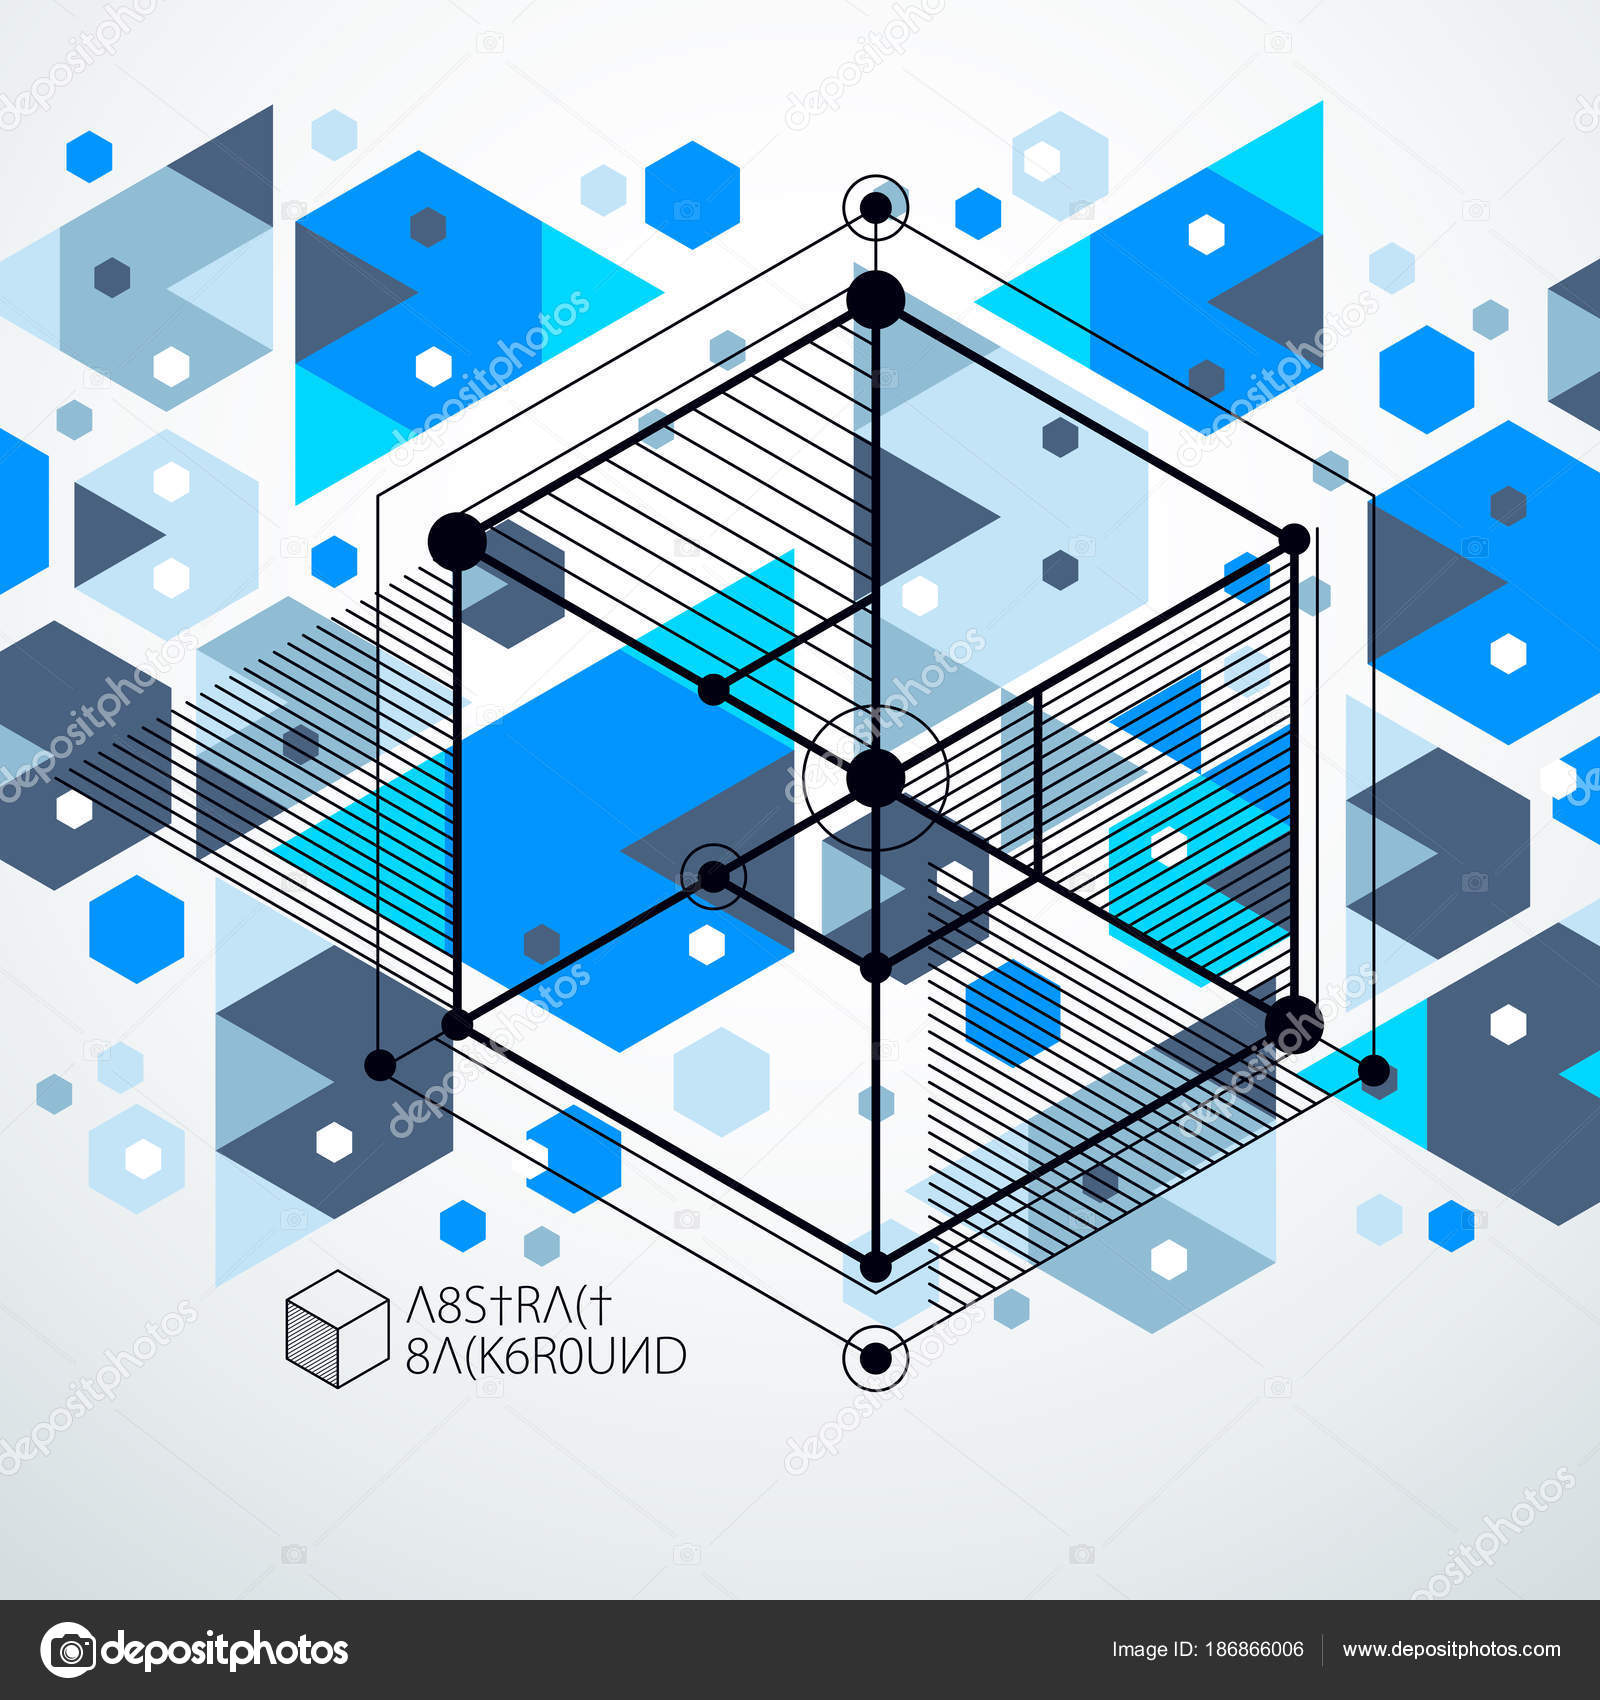 Engineering Technology Vector Blue Wallpaper Made With 3D Cubes And Lines Technological Honeycombs